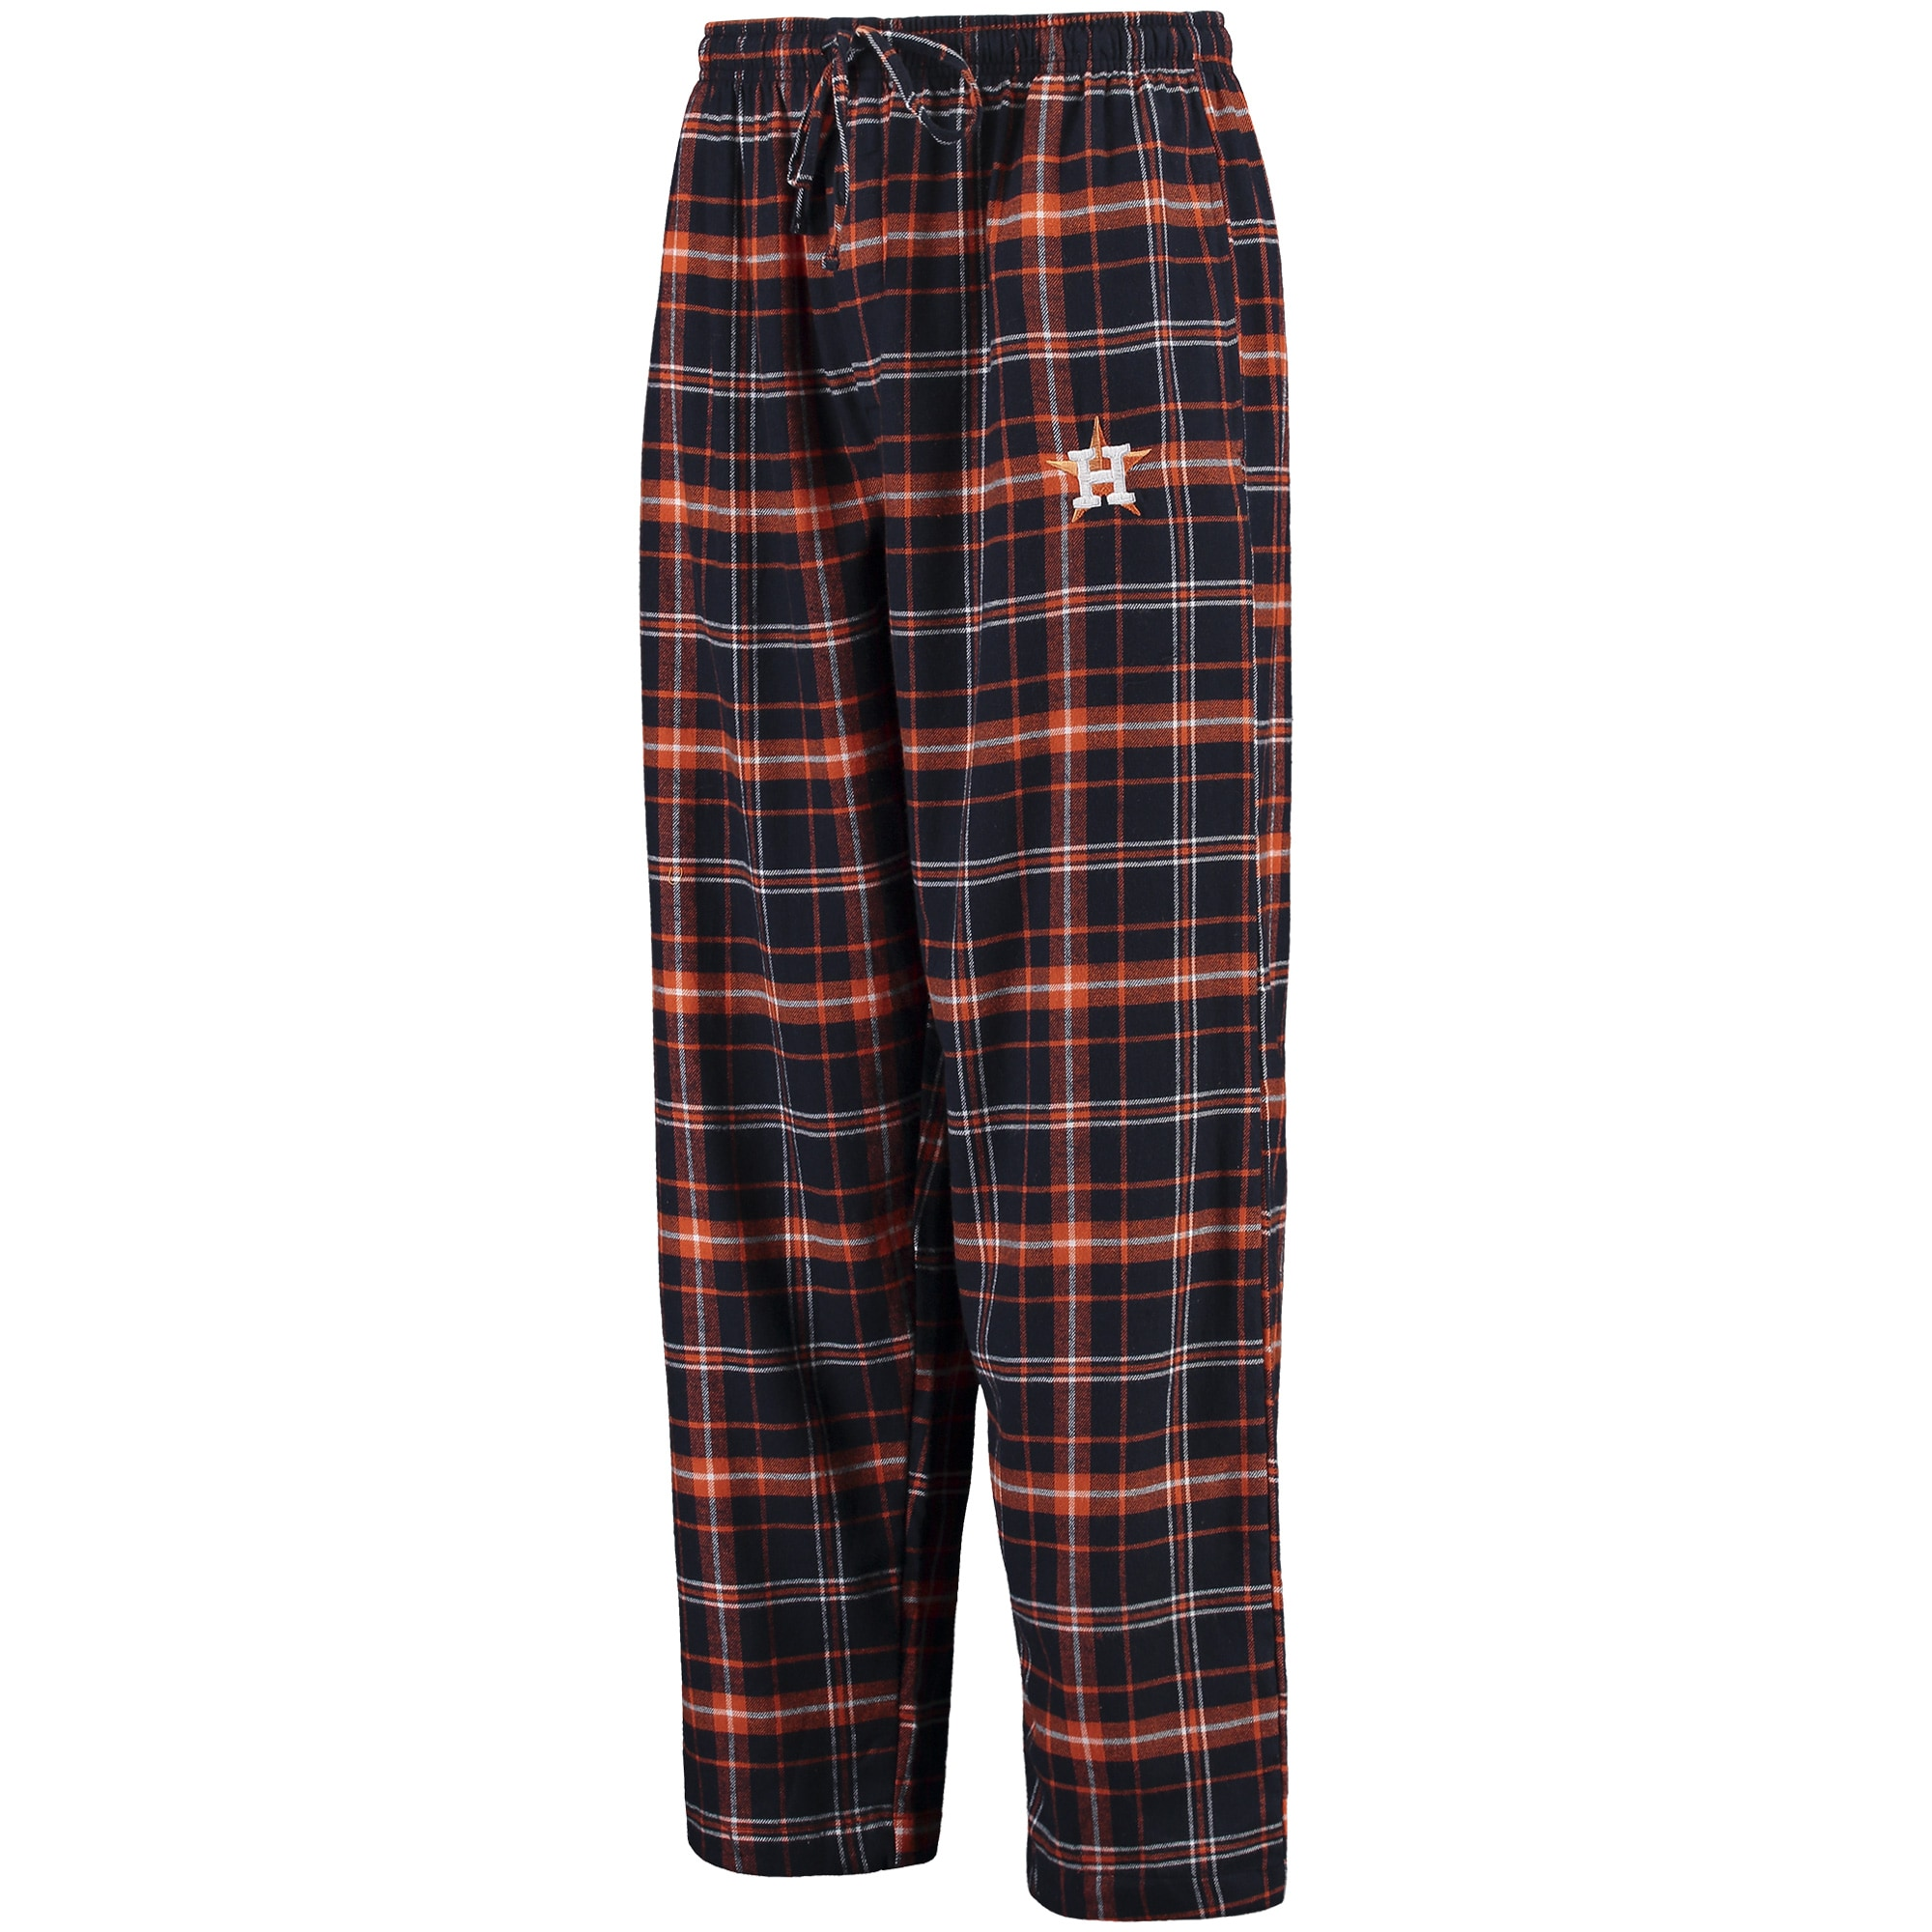 Houston Astros Concepts Sport Ultimate Plaid Flannel Pants - Navy/Orange